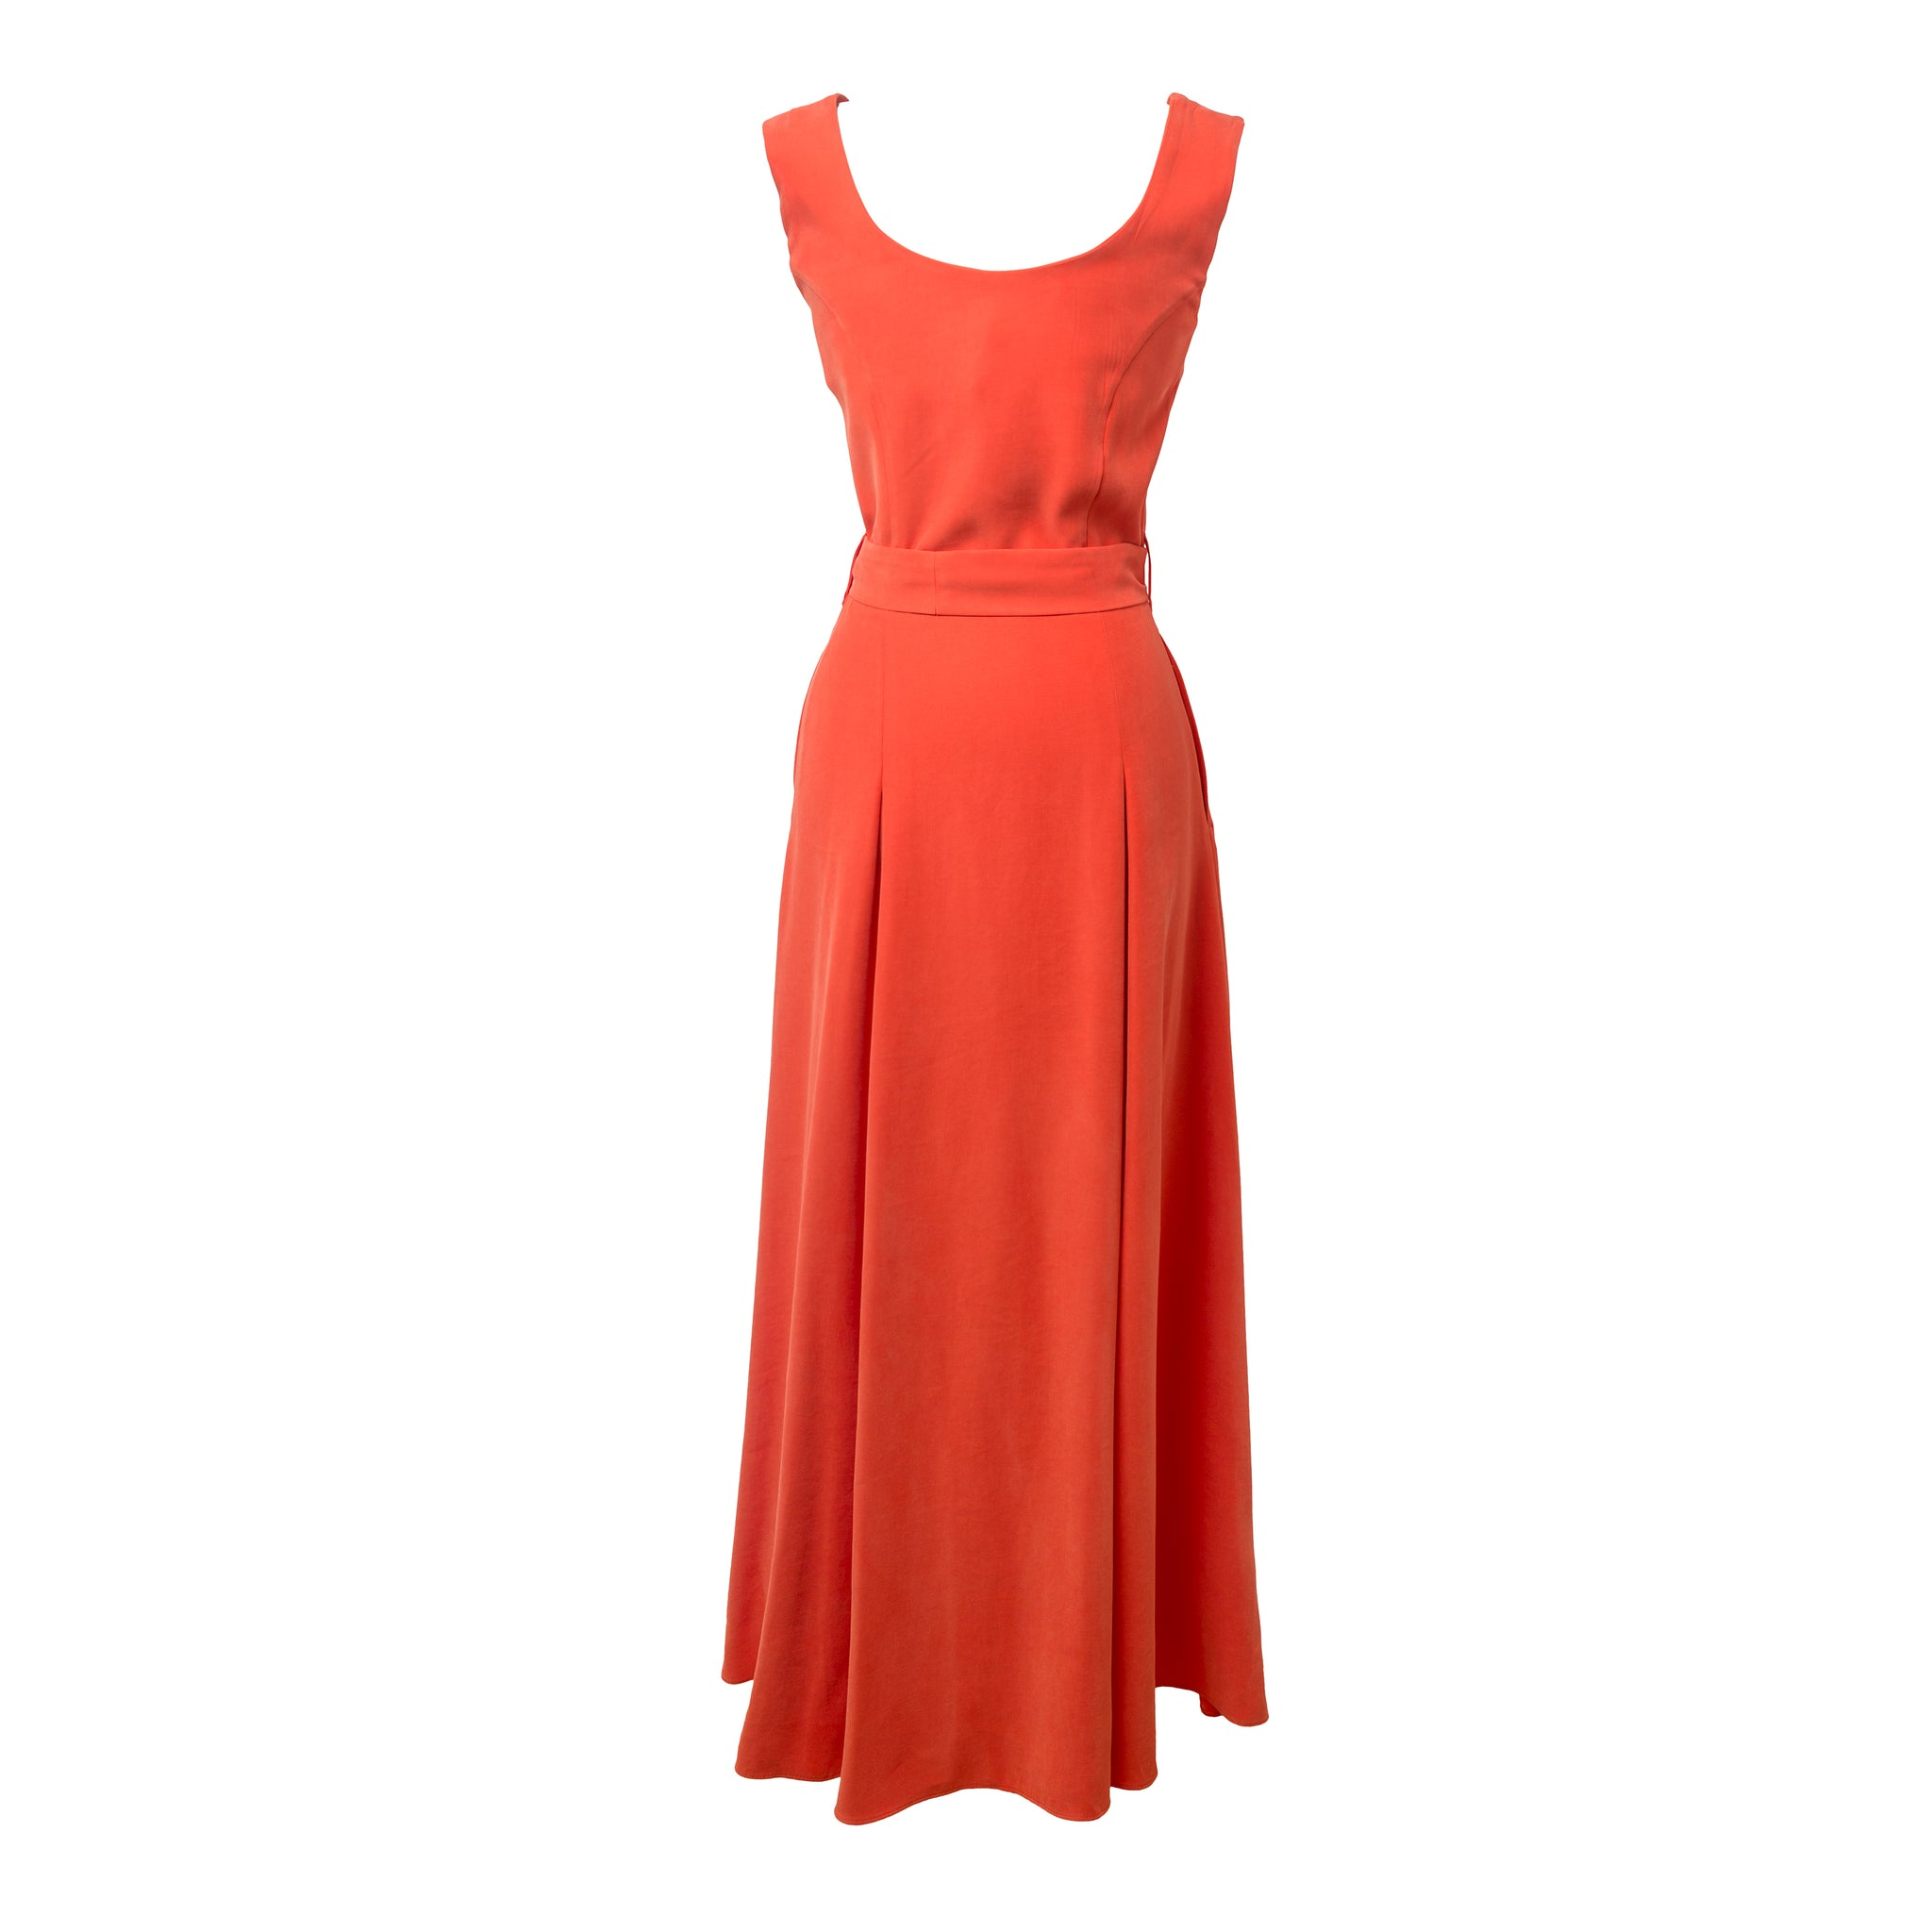 BALASTYA Salmon Multi Slits Dress